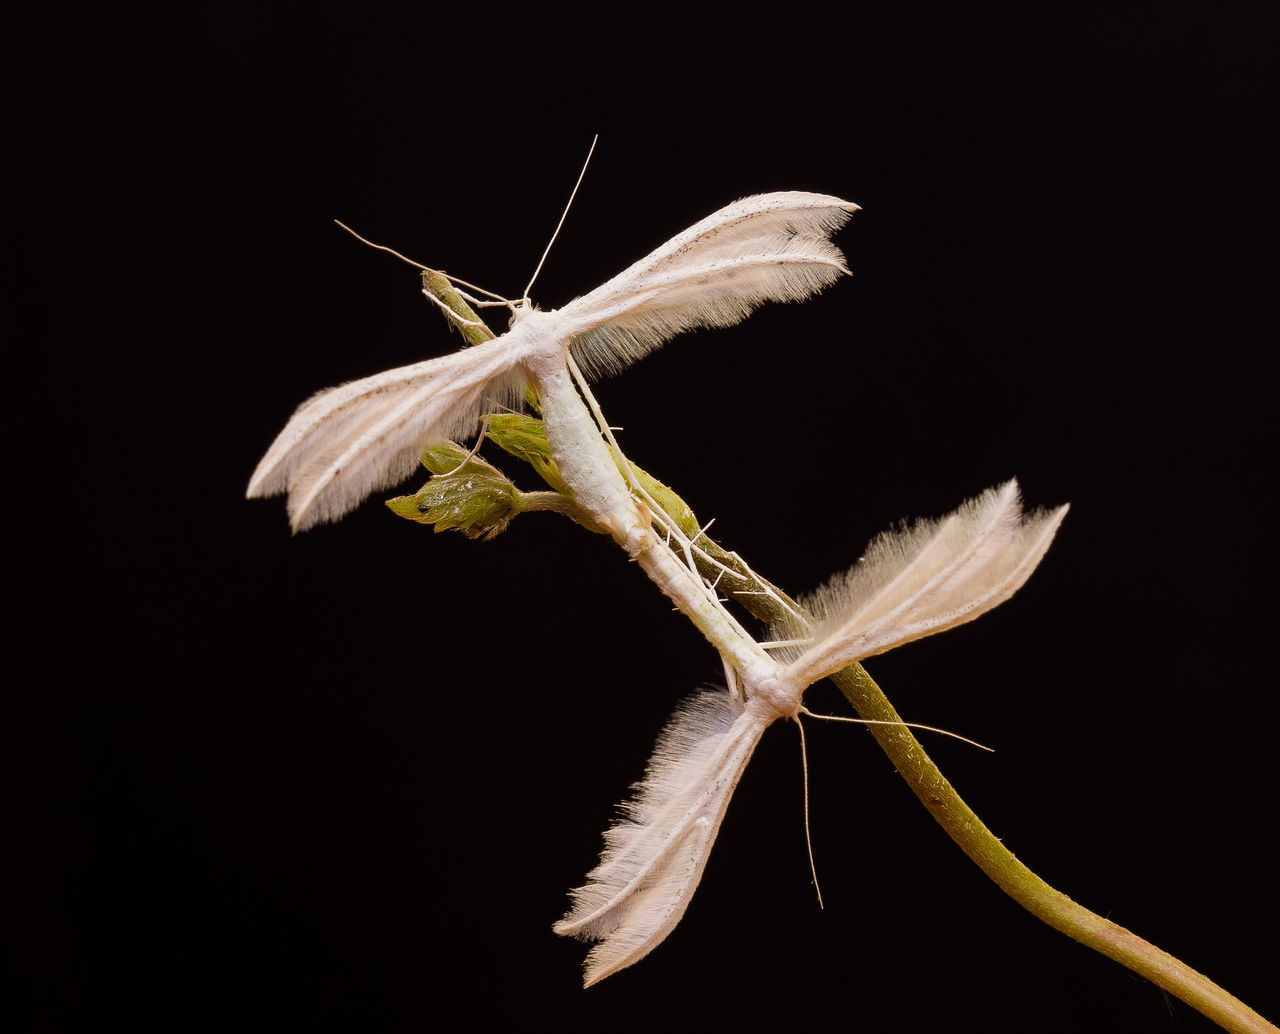 White butterflies isolated on the black background Angel Angel Wings Animal Themes Animals In The Wild Black Background Butterflies Close-up EyeEmNewHere Fragility Insect Love Mating Mating Butterflies Mating Dance Nature Night No People Outdoors Plant Studio Shot White Butterfies